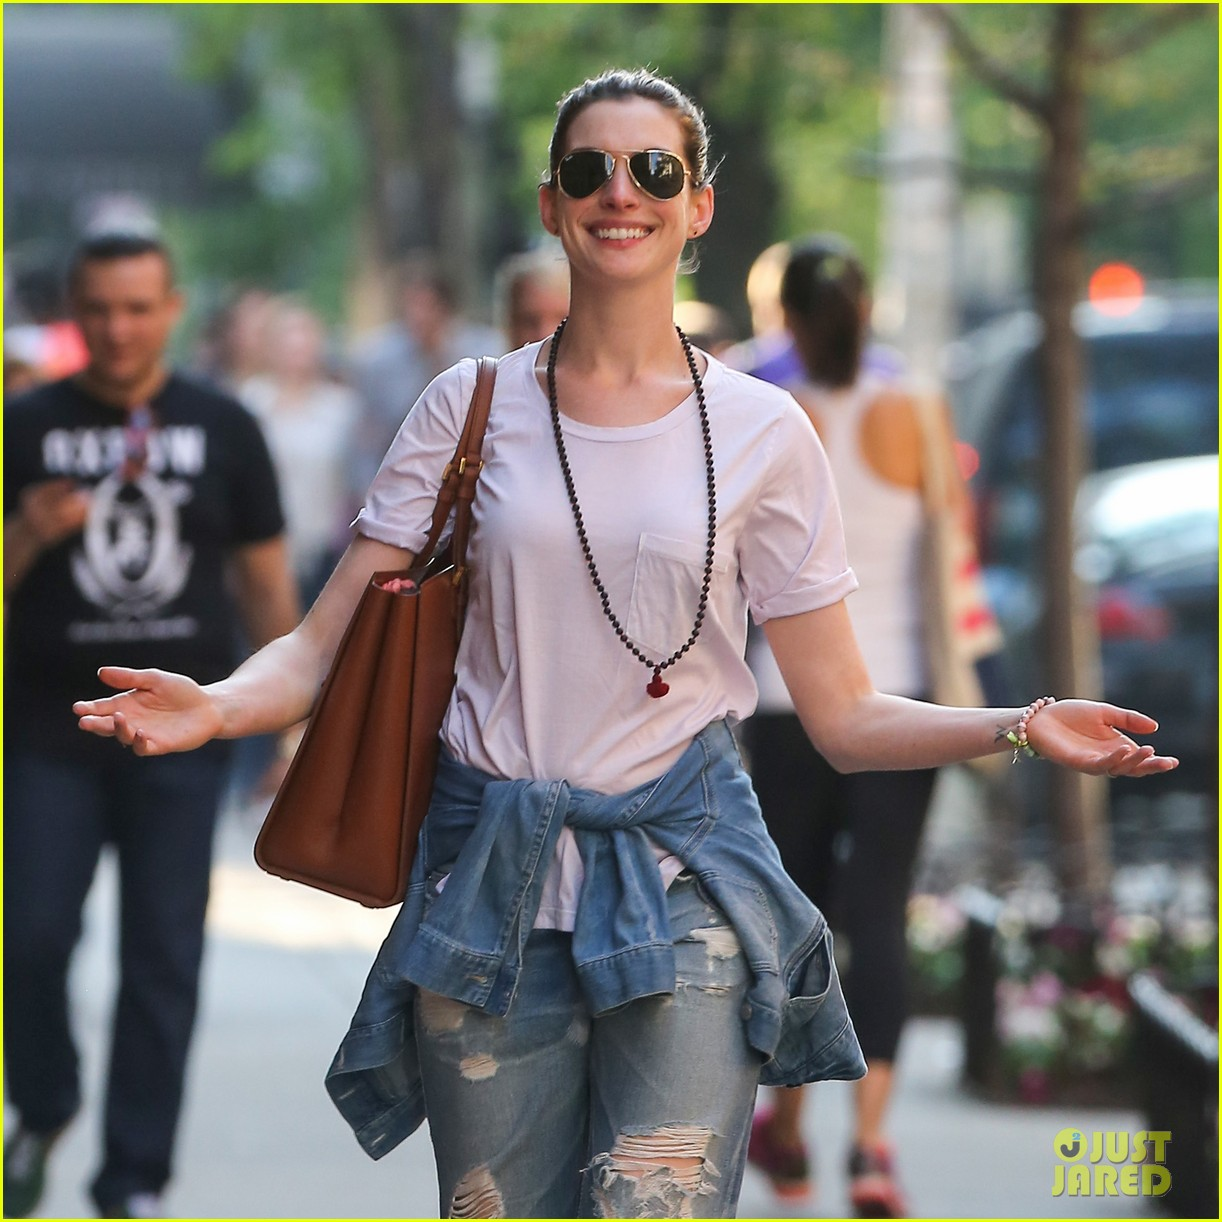 Anne Hathaway Shows Off Her Big Smile In NYC: Photo